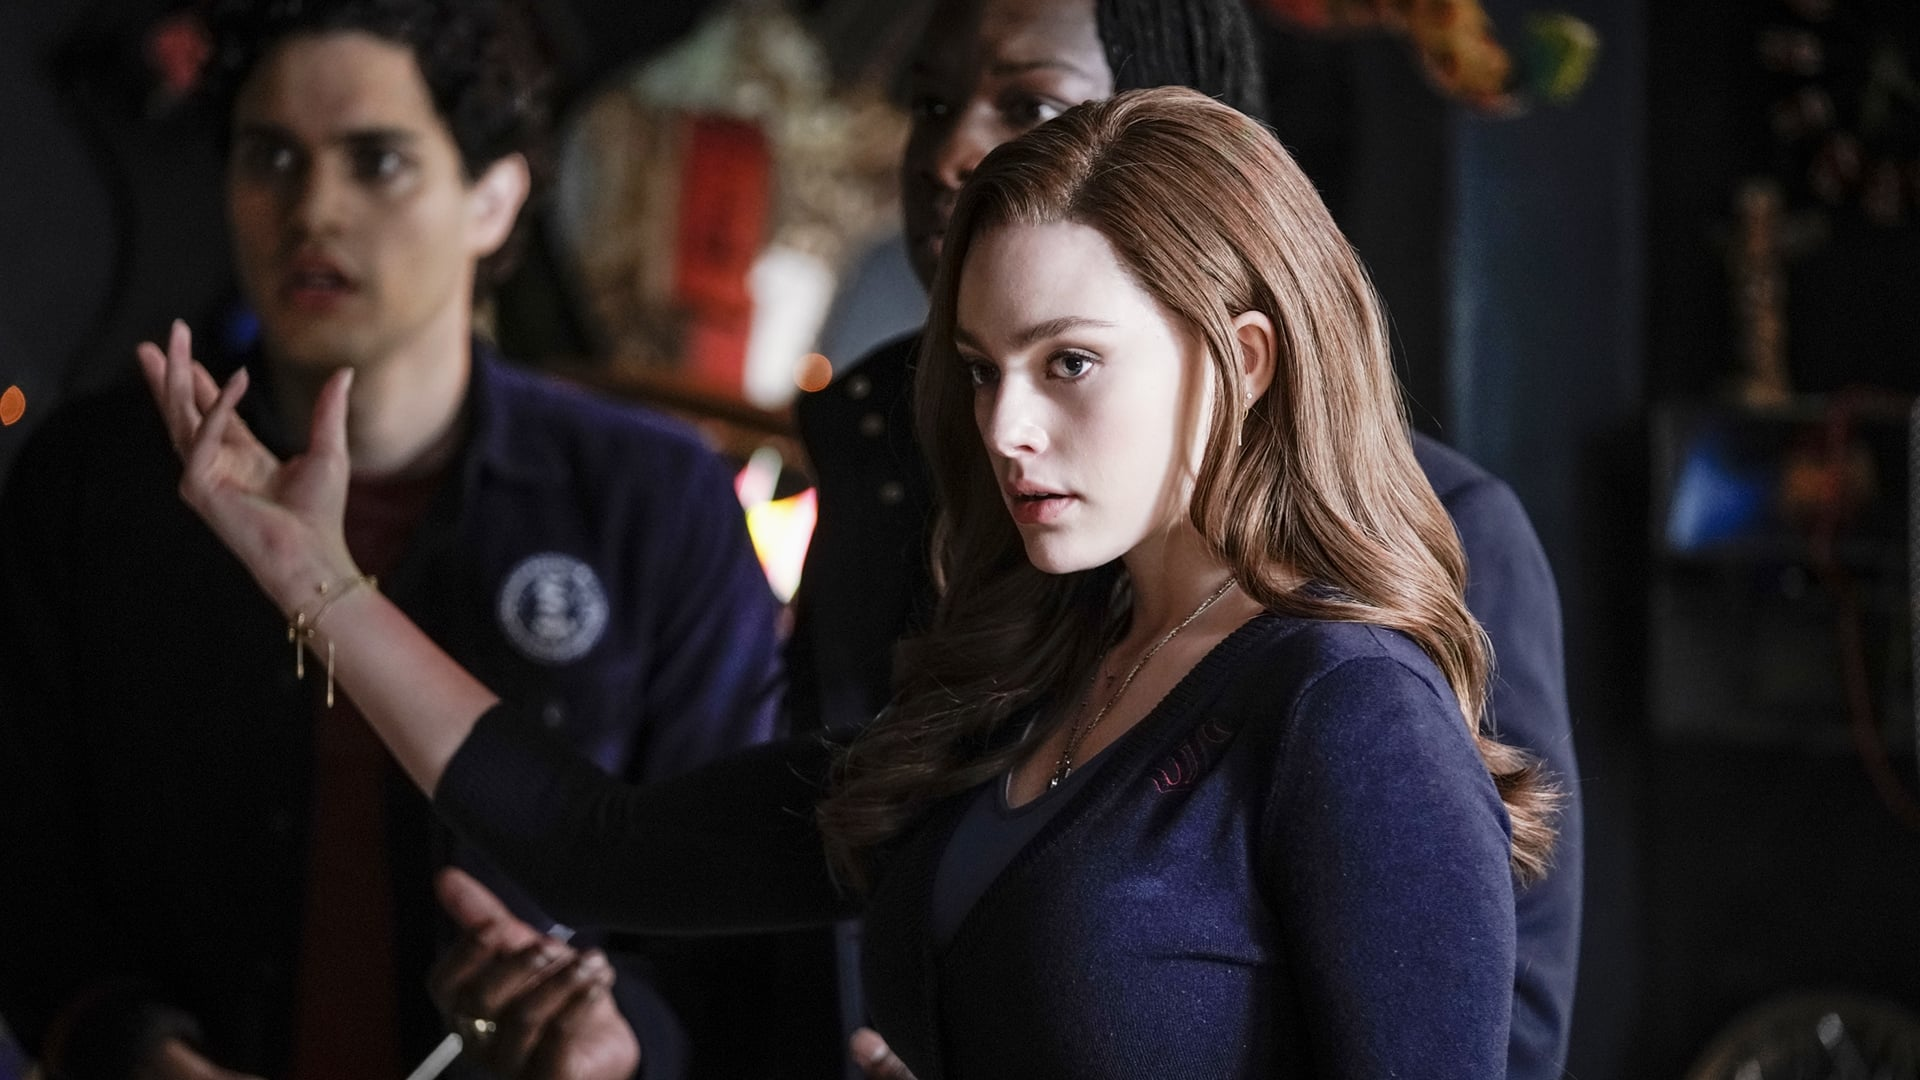 Legacies - Season 2 Episode 11 : What Cupid Problem?